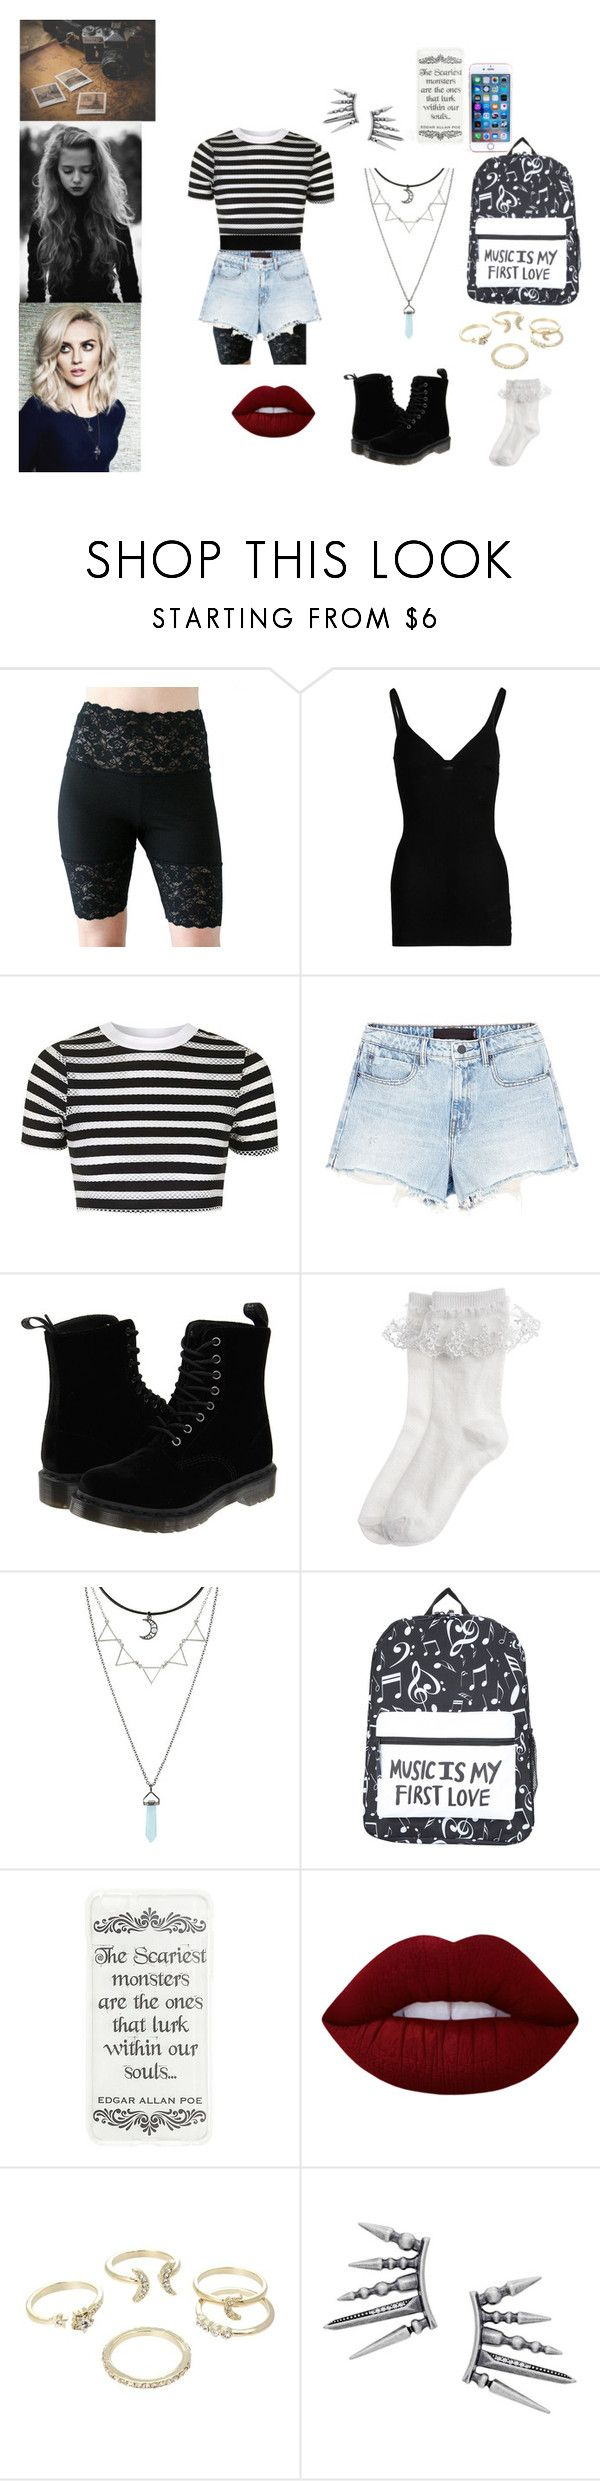 """""""Perrie Edwards"""" by cmouton on Polyvore featuring Wolford, Topshop, Alexander Wang, Dr. Martens, Monsoon, Lime Crime and Lipsy"""